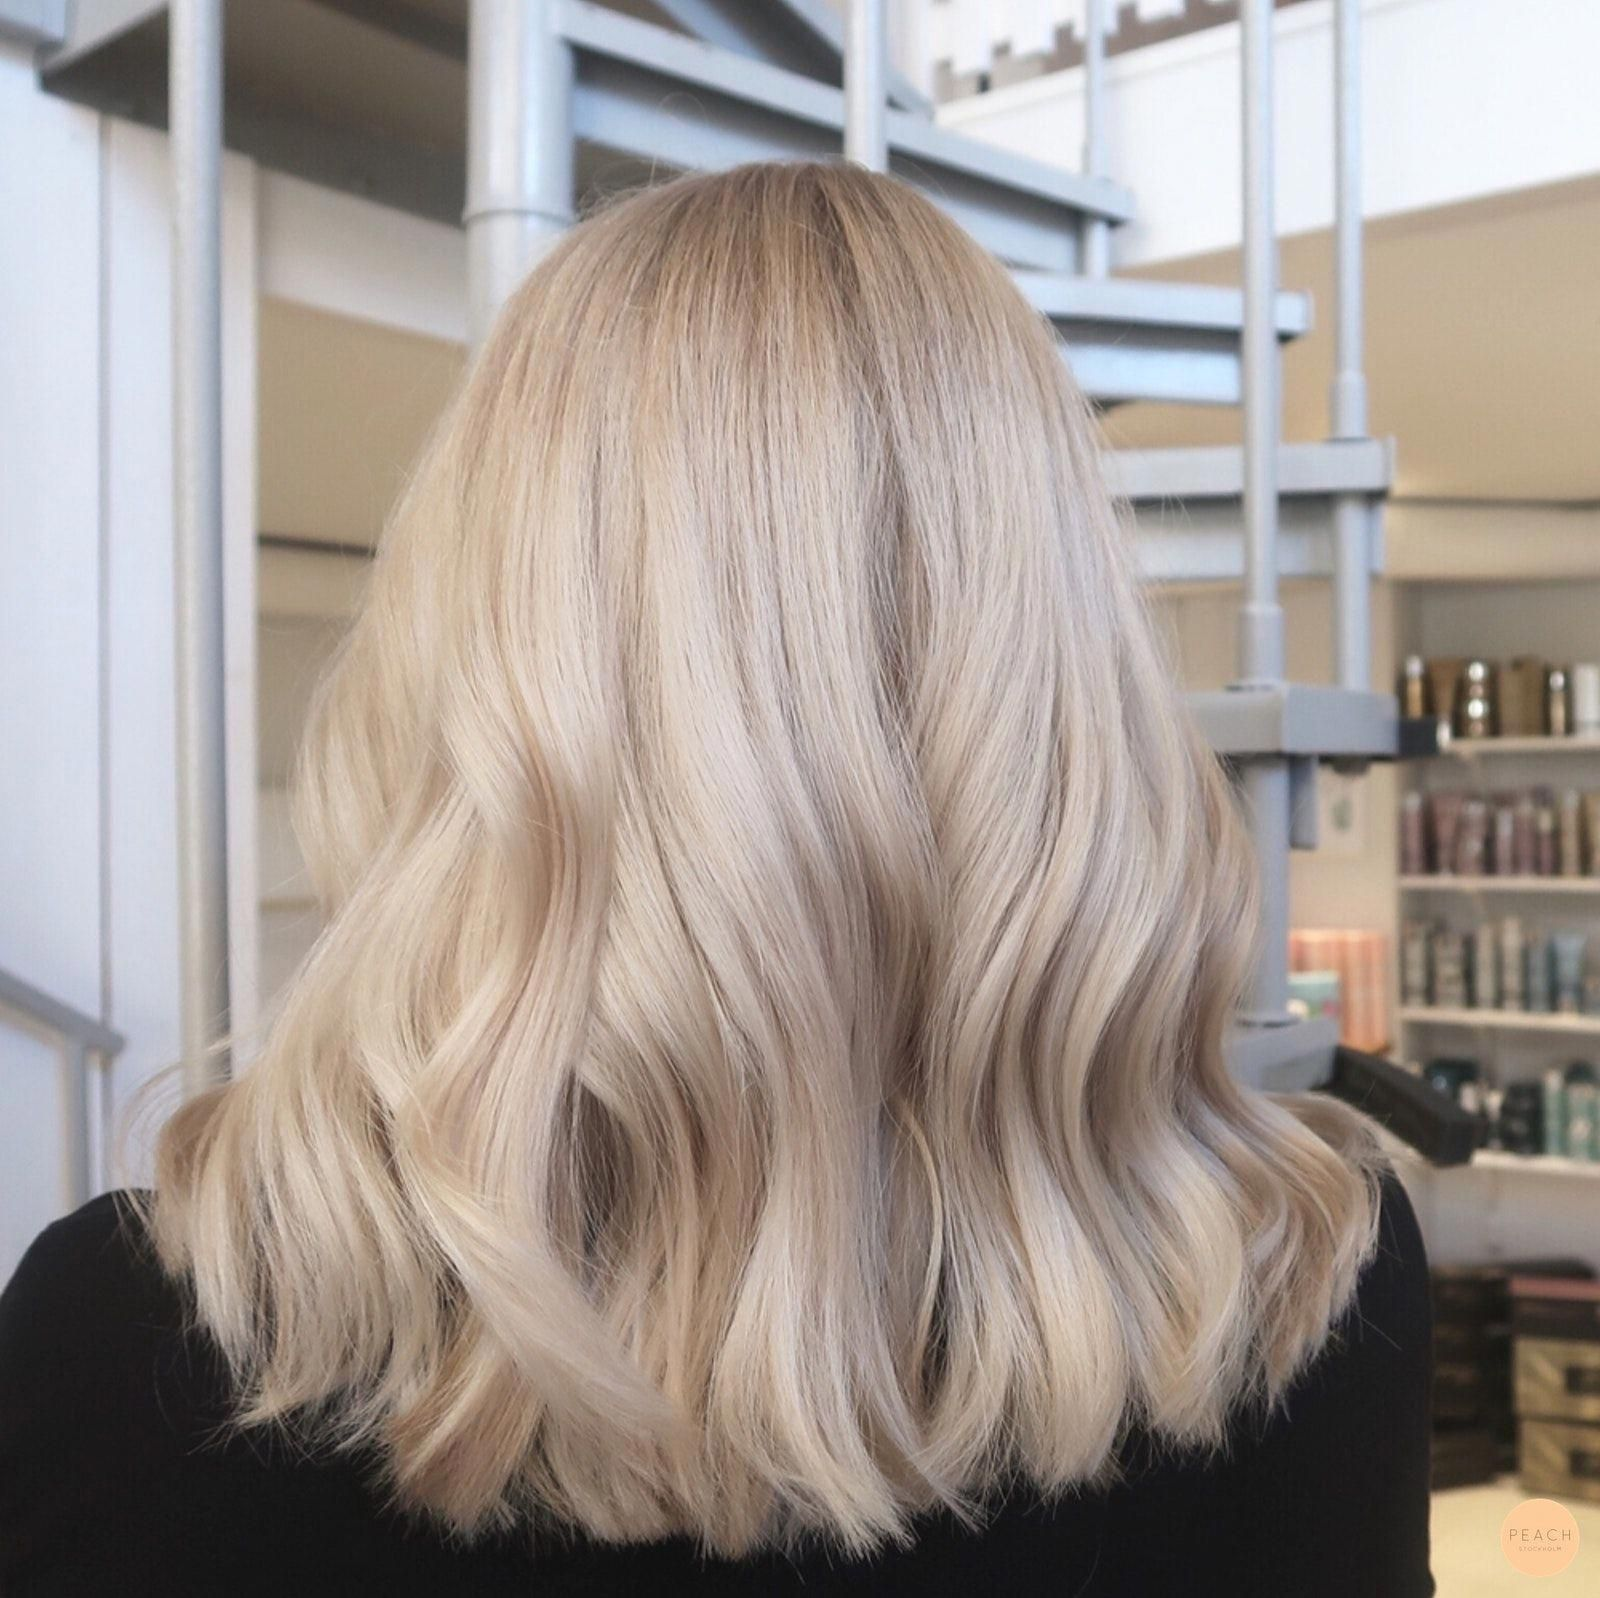 Makeover stockholm – Peach Stockholm #haircolorbalayage #blondehair